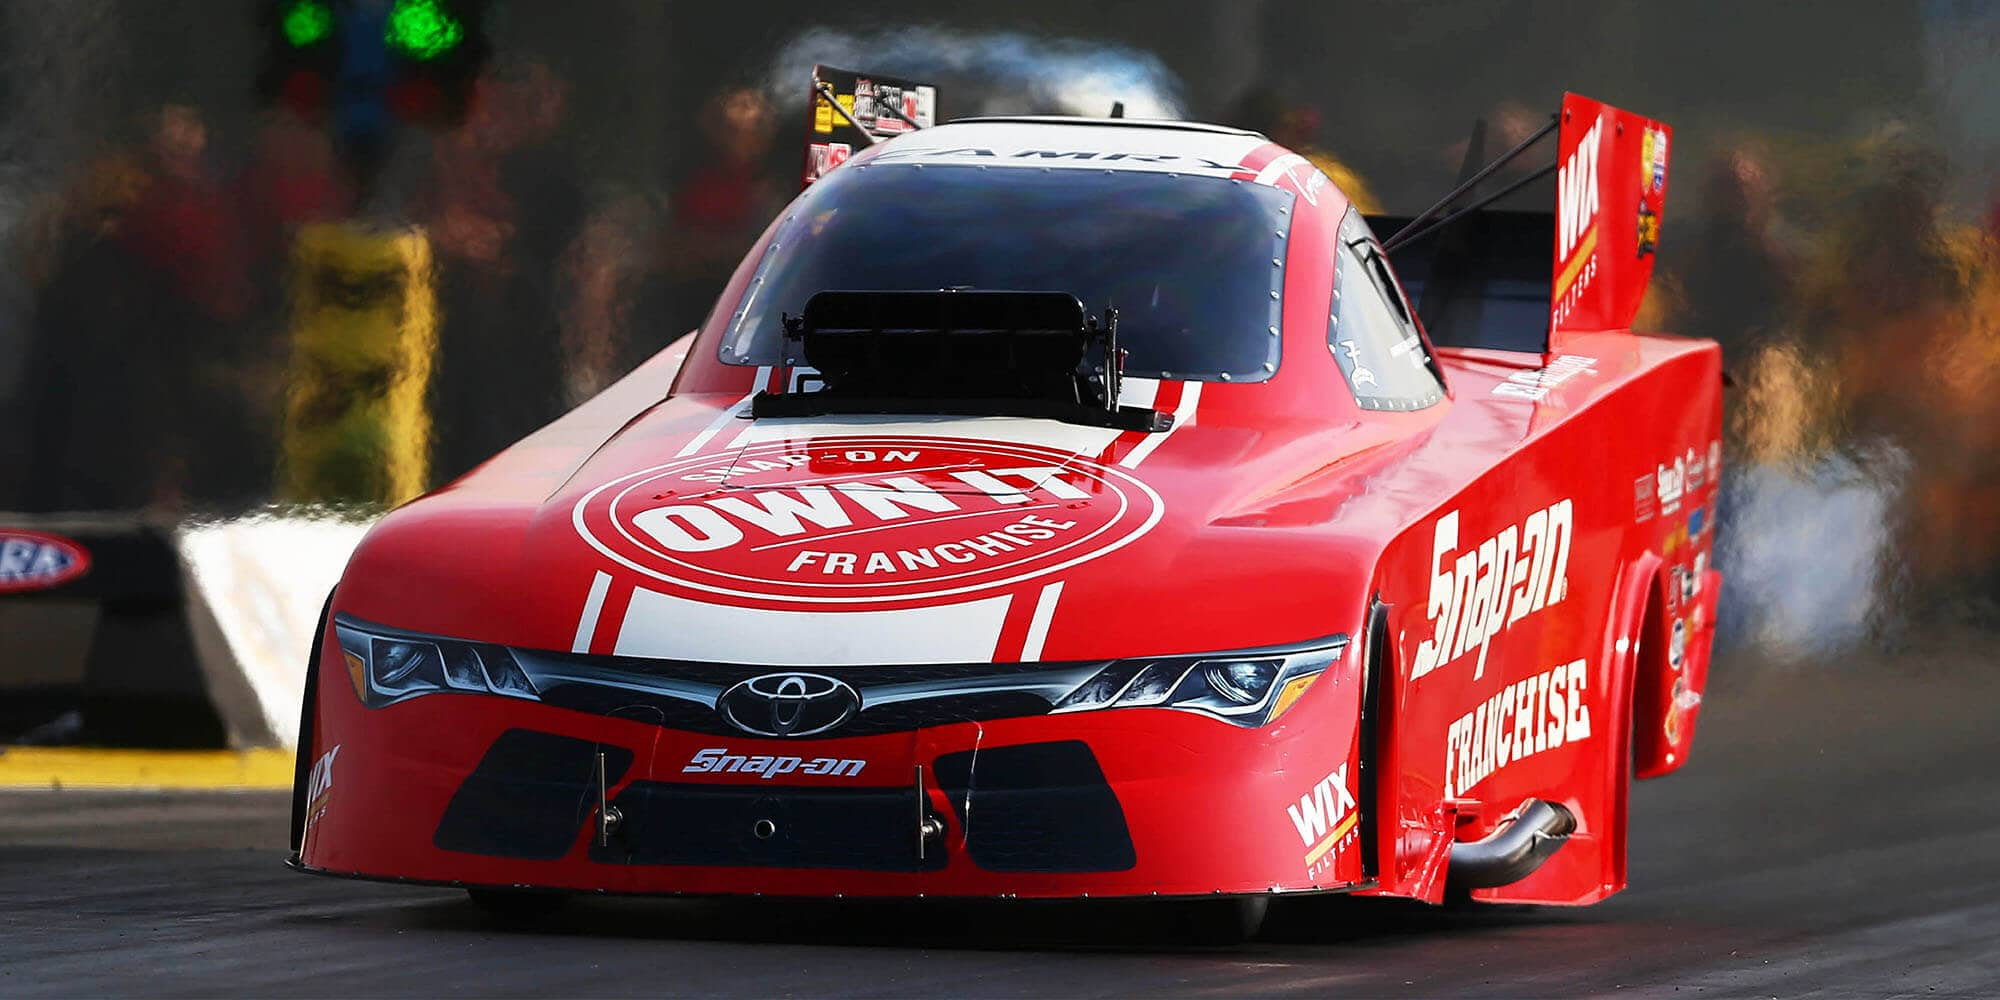 Snap-on Franchise Race car